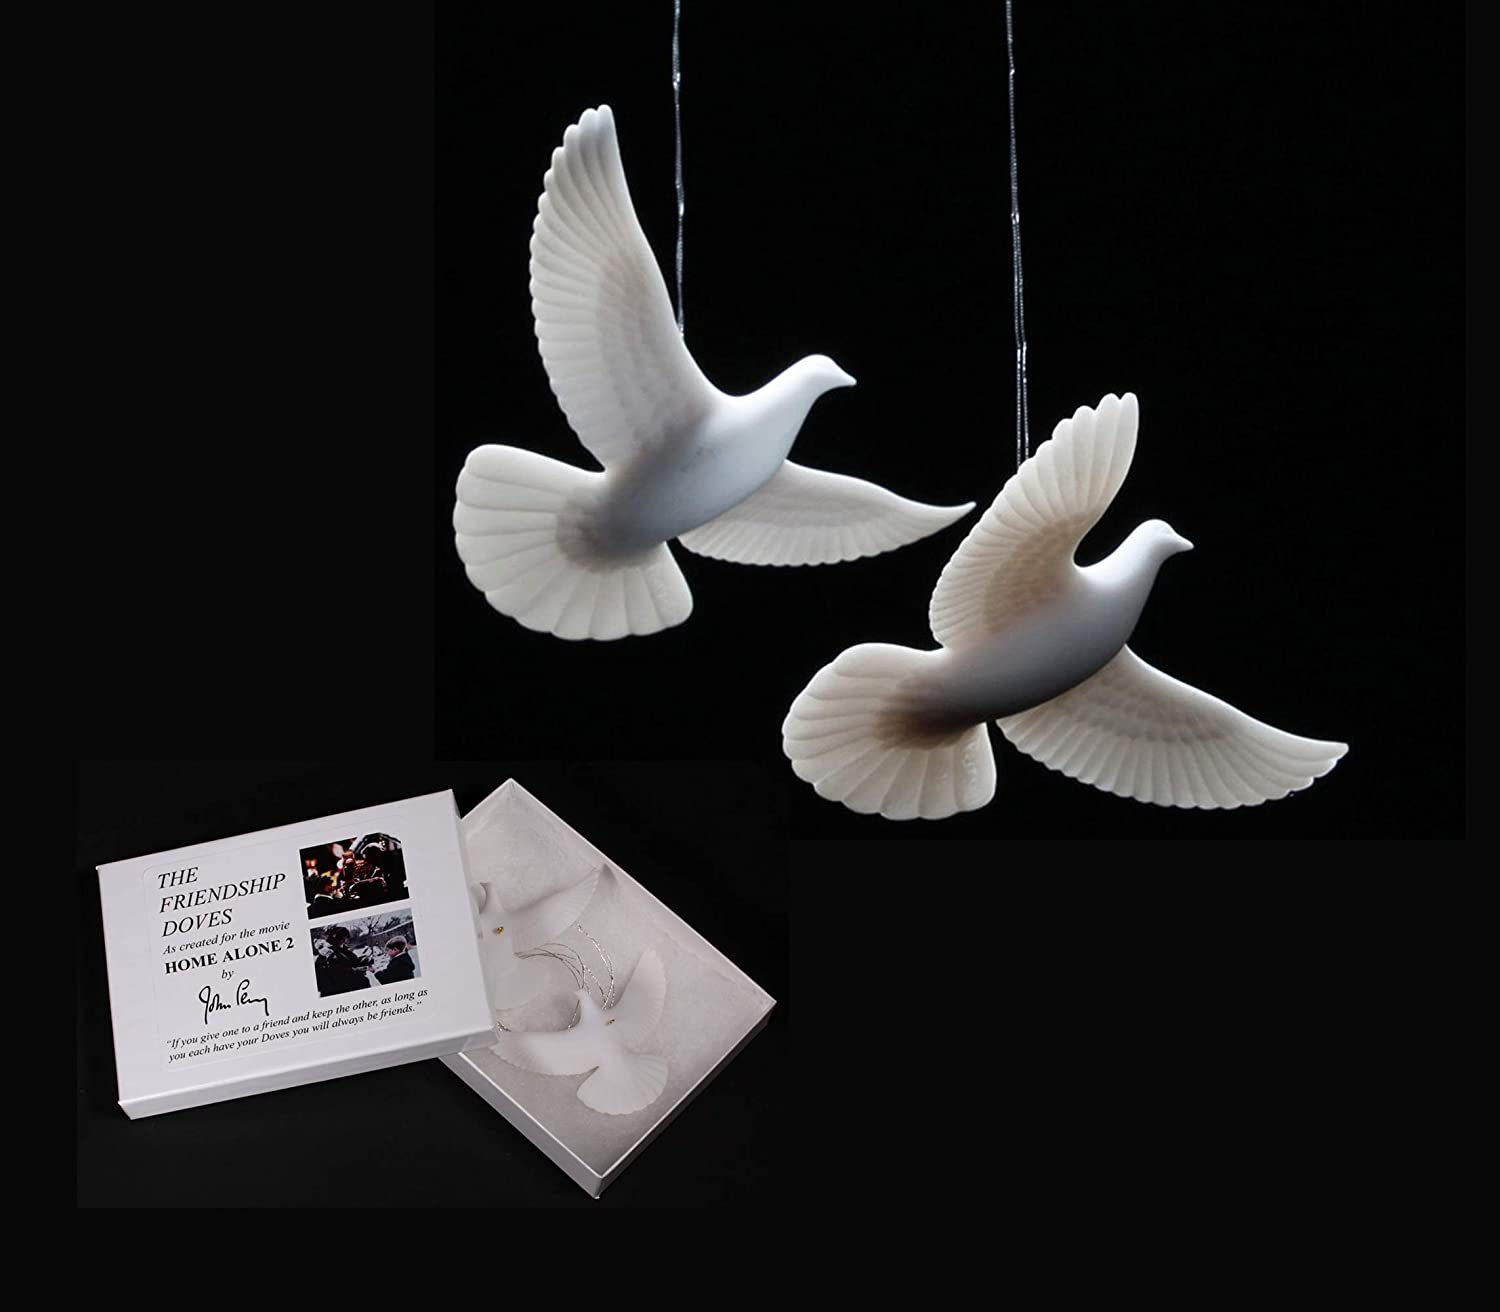 HOME ALONE 2 DOVES AUTHENTIC & GENUINE from John Perry who made them for the movie